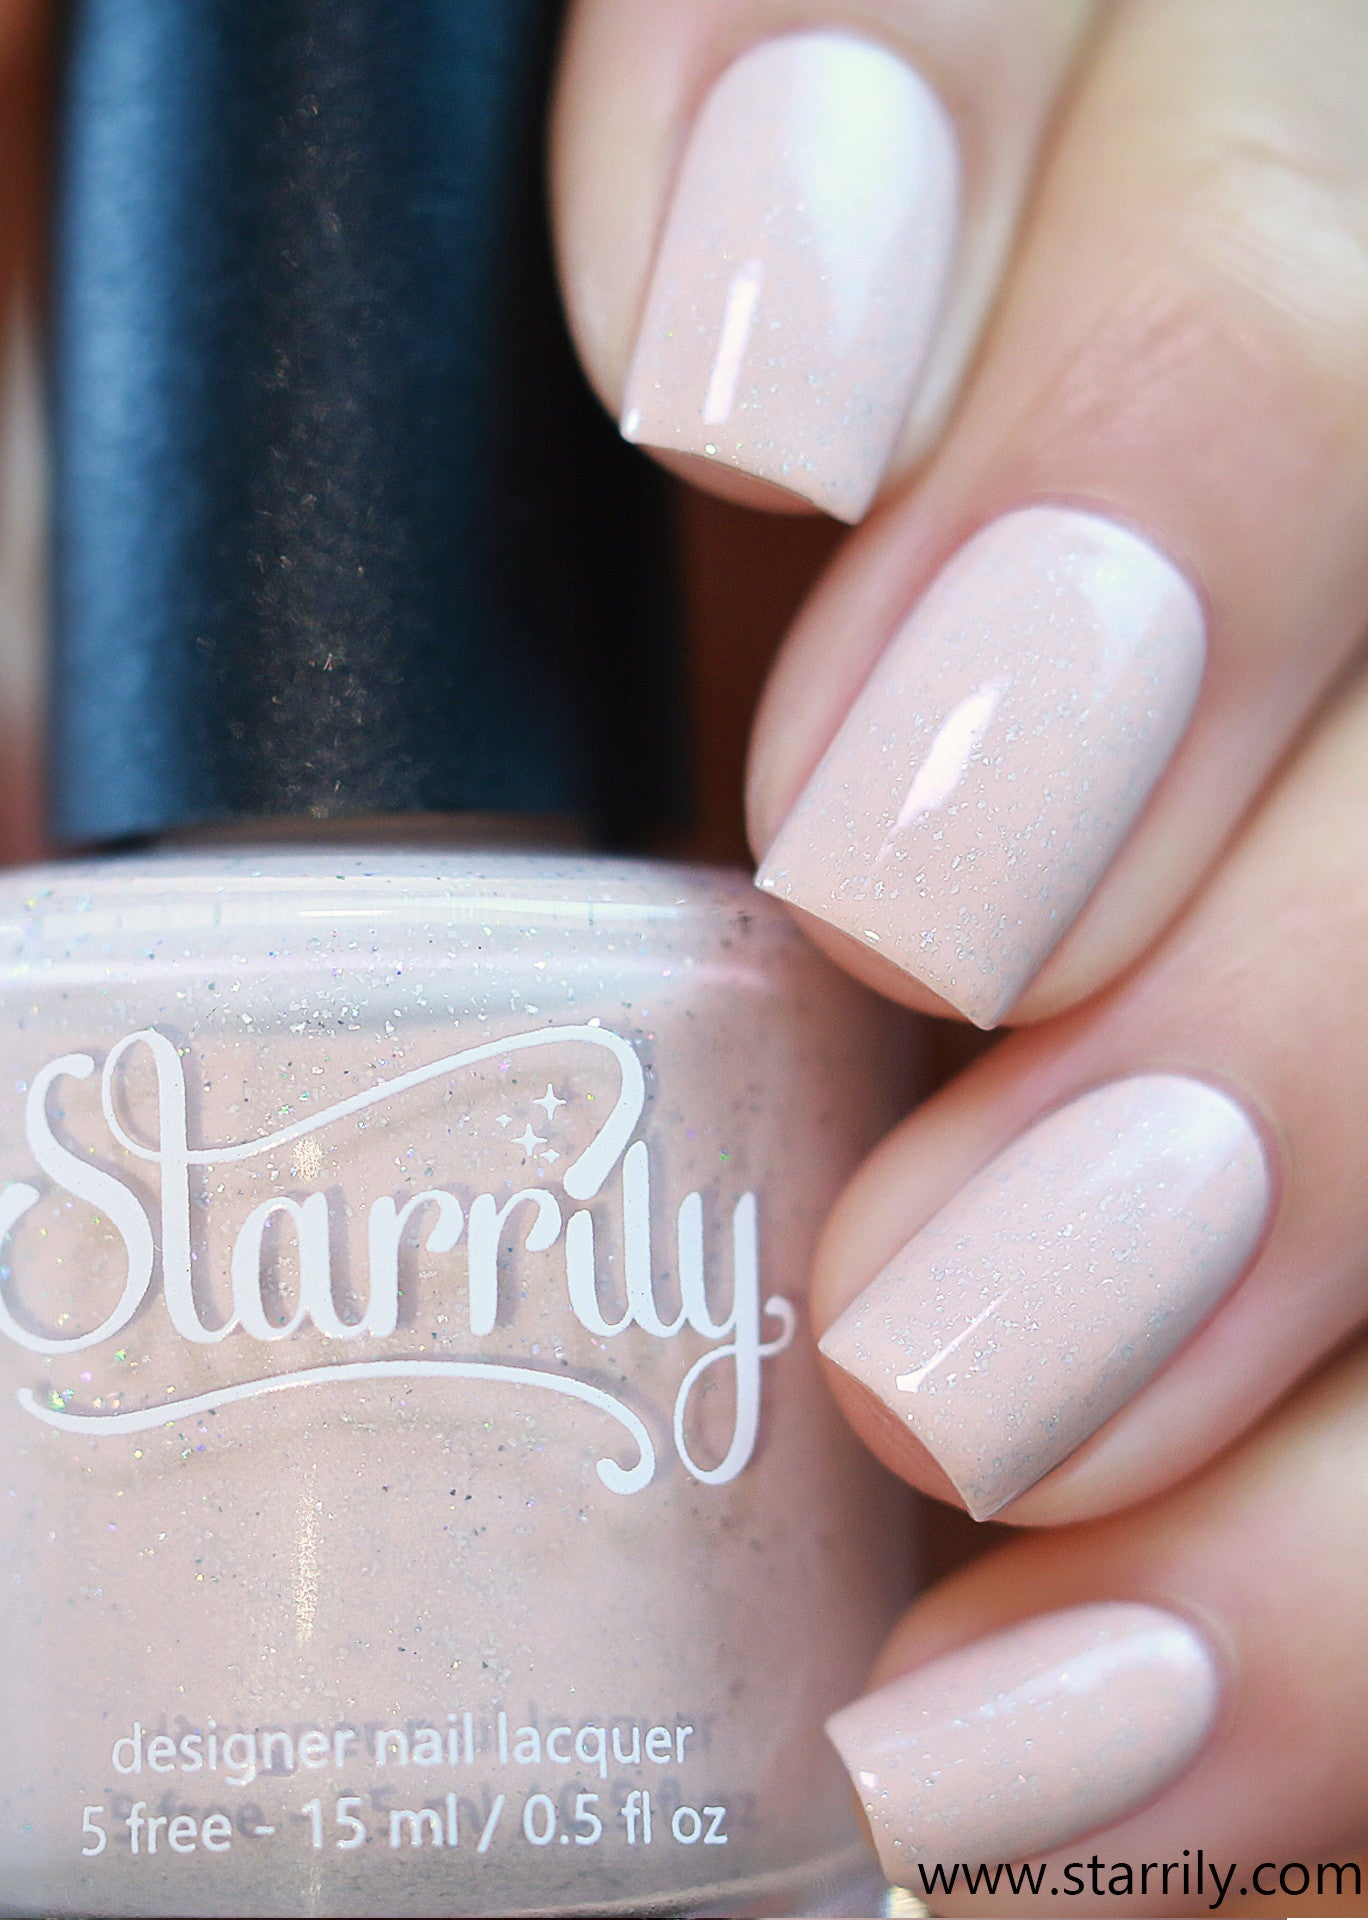 Starrily Ortley Beach - Nude Holographic Nail Polish - 15 ml